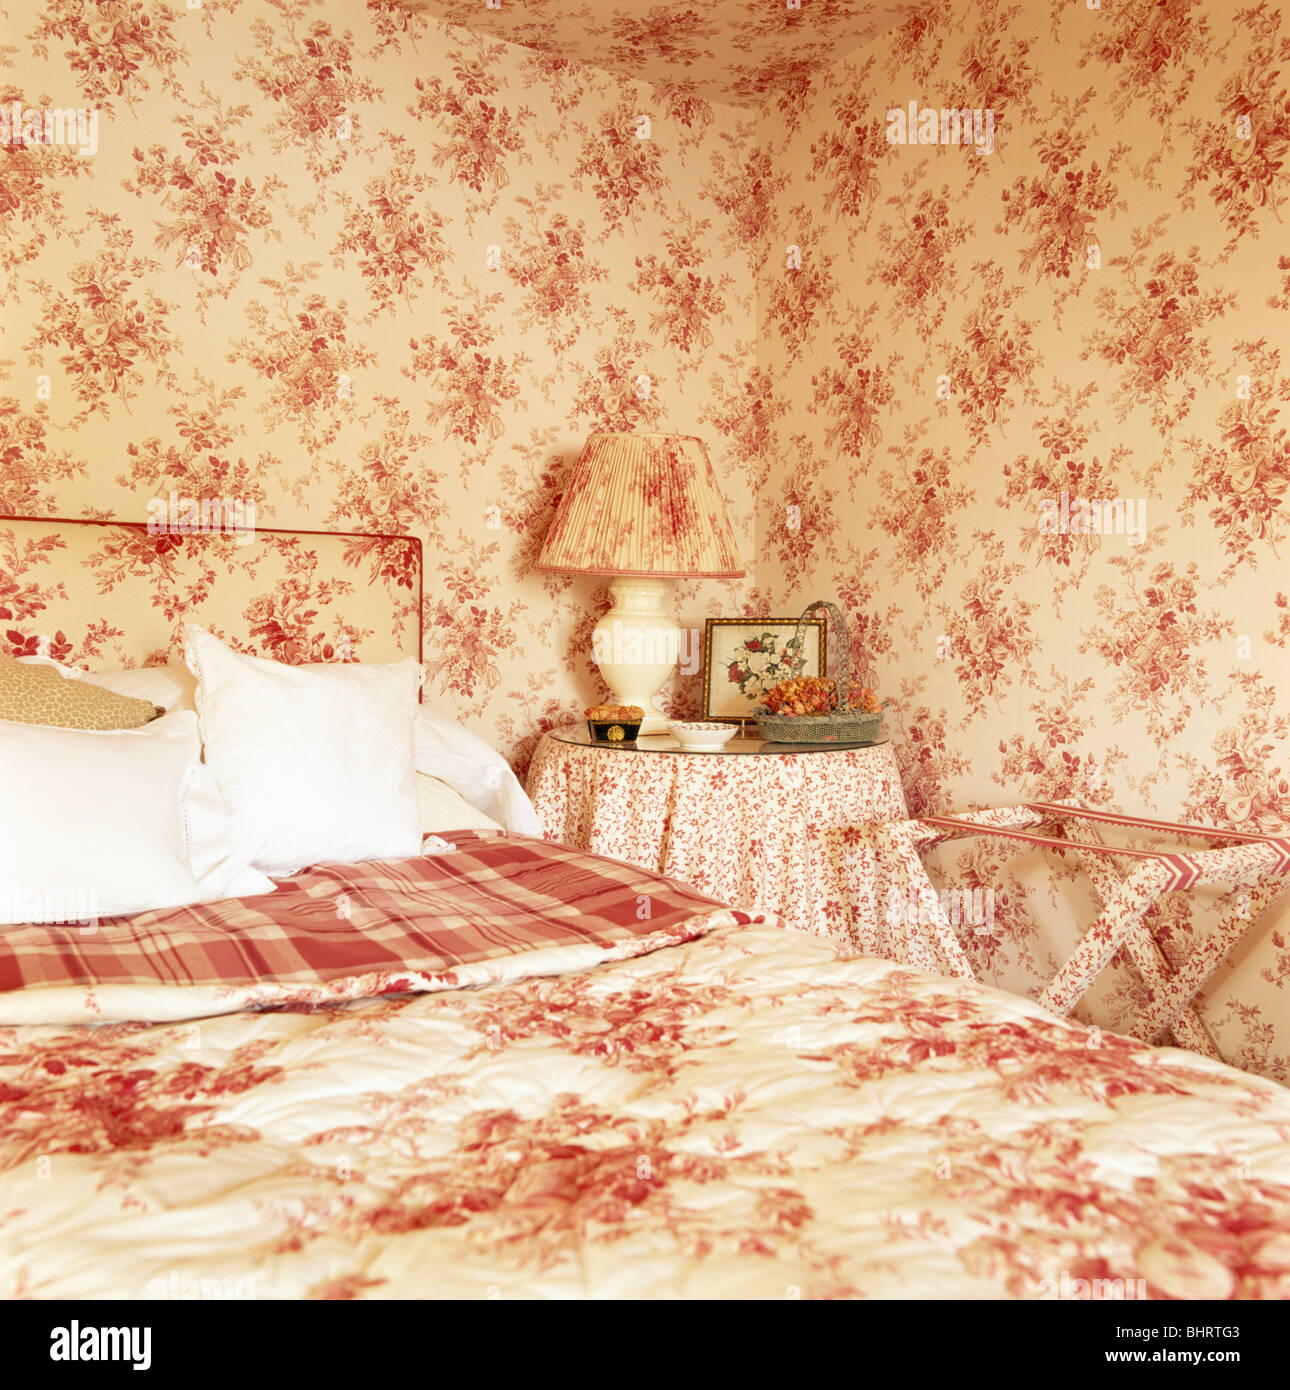 Pink Floral Wallpaper And Matching Quilt In Country Bedroom Stock